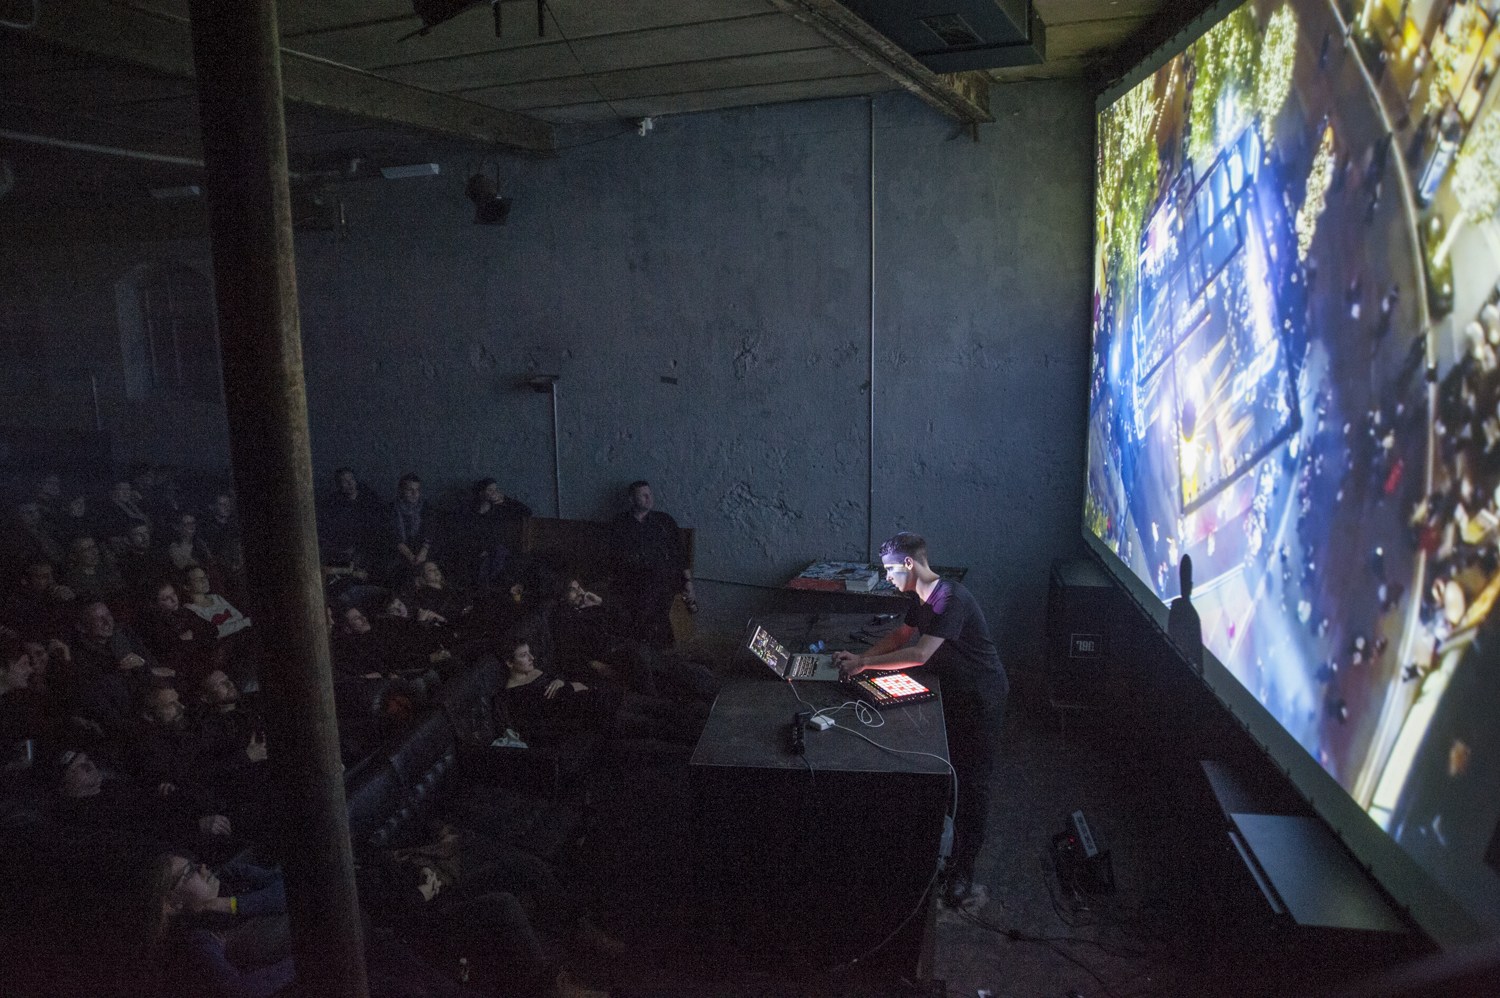 A/V Performance by J.G. Biberkopf